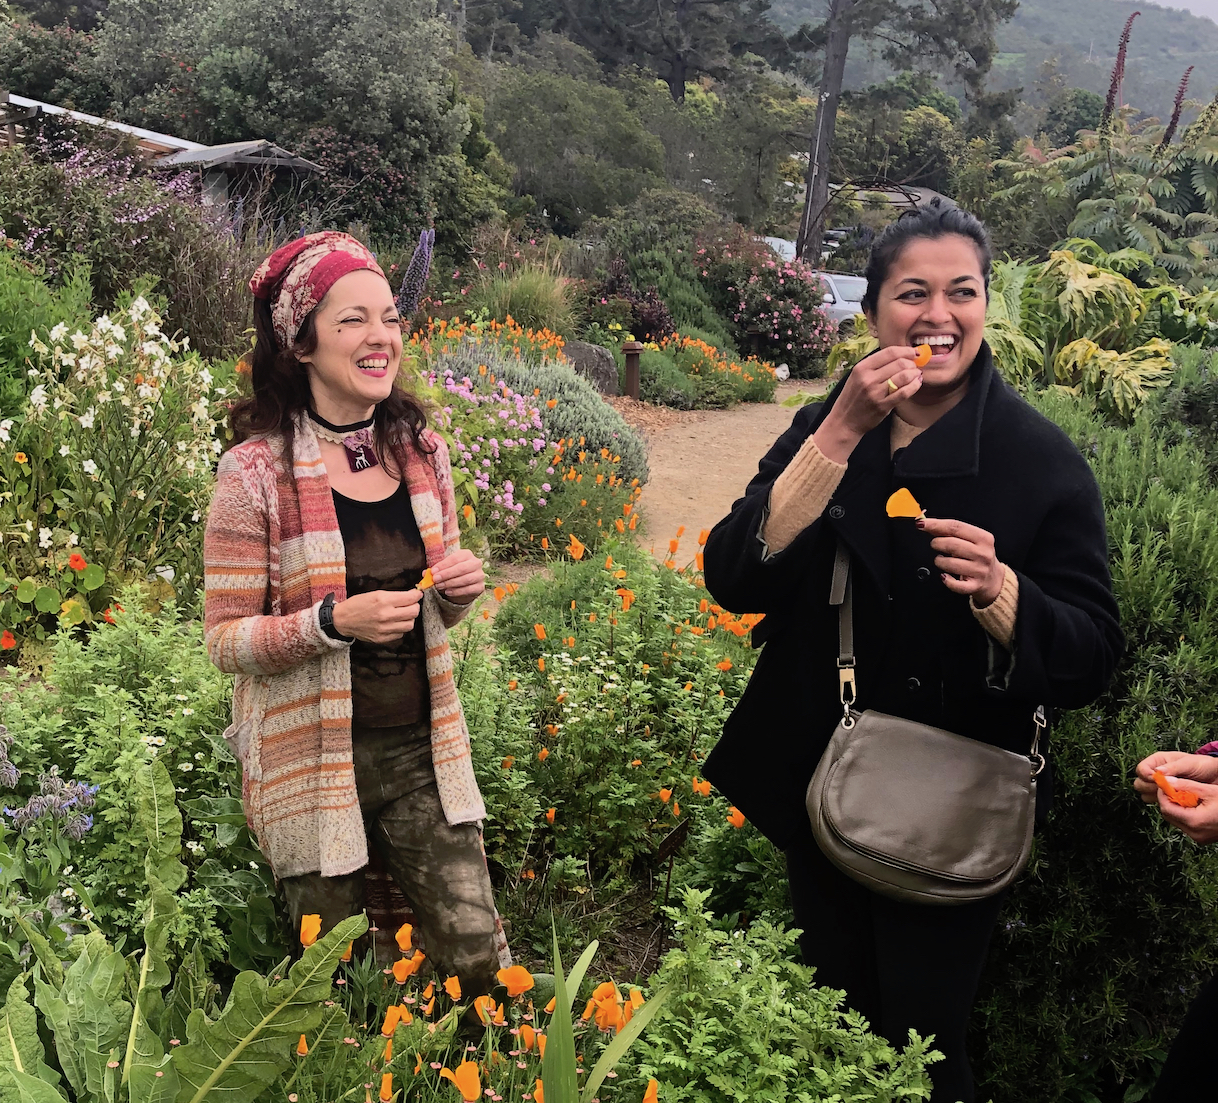 Shankari teaching class on edible flowers at Esalen Institute while student tastes a flower